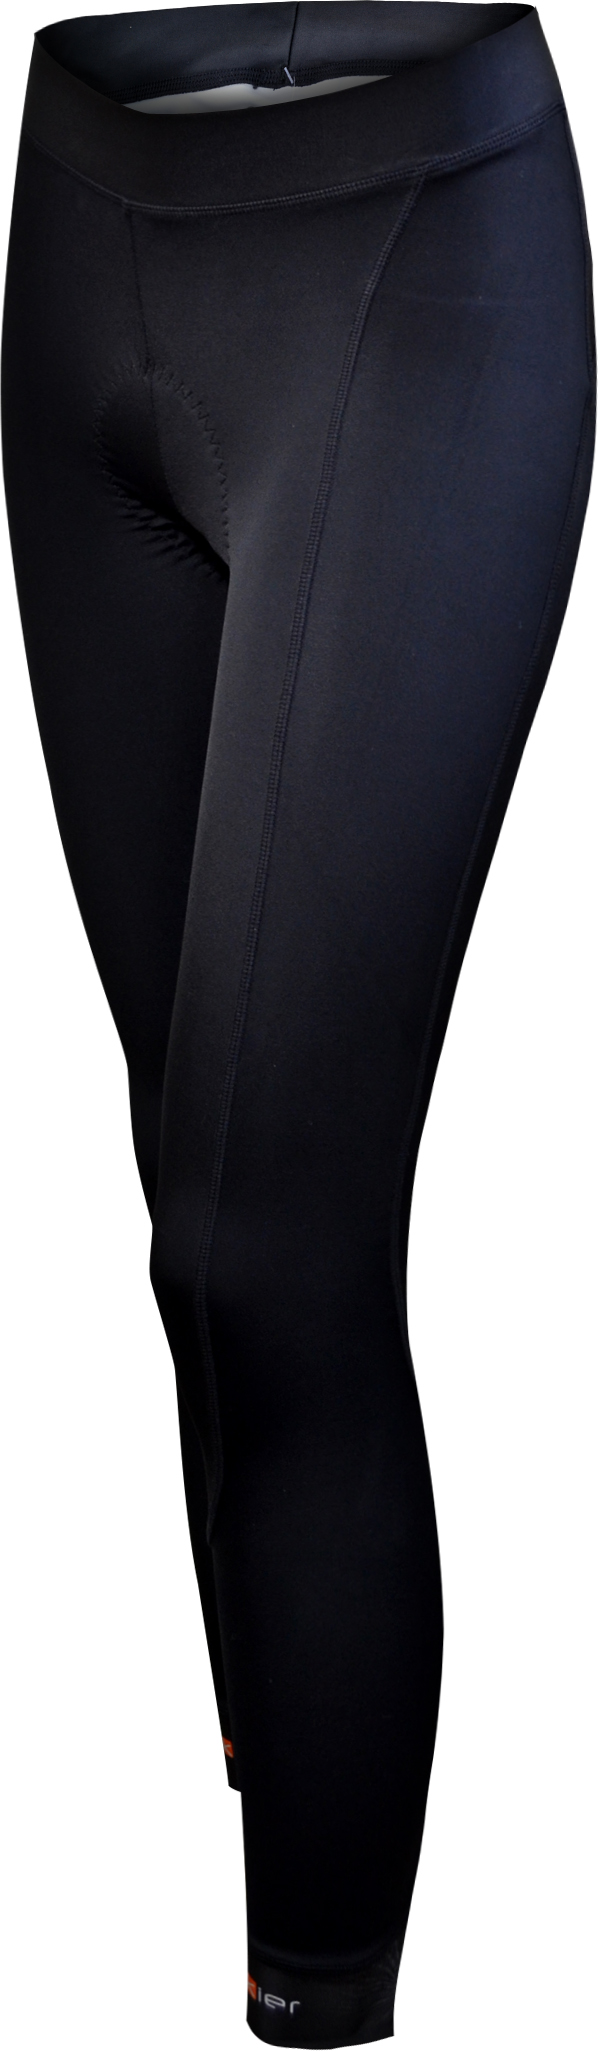 Funkier Womens Summer Full Length Tights | Trousers